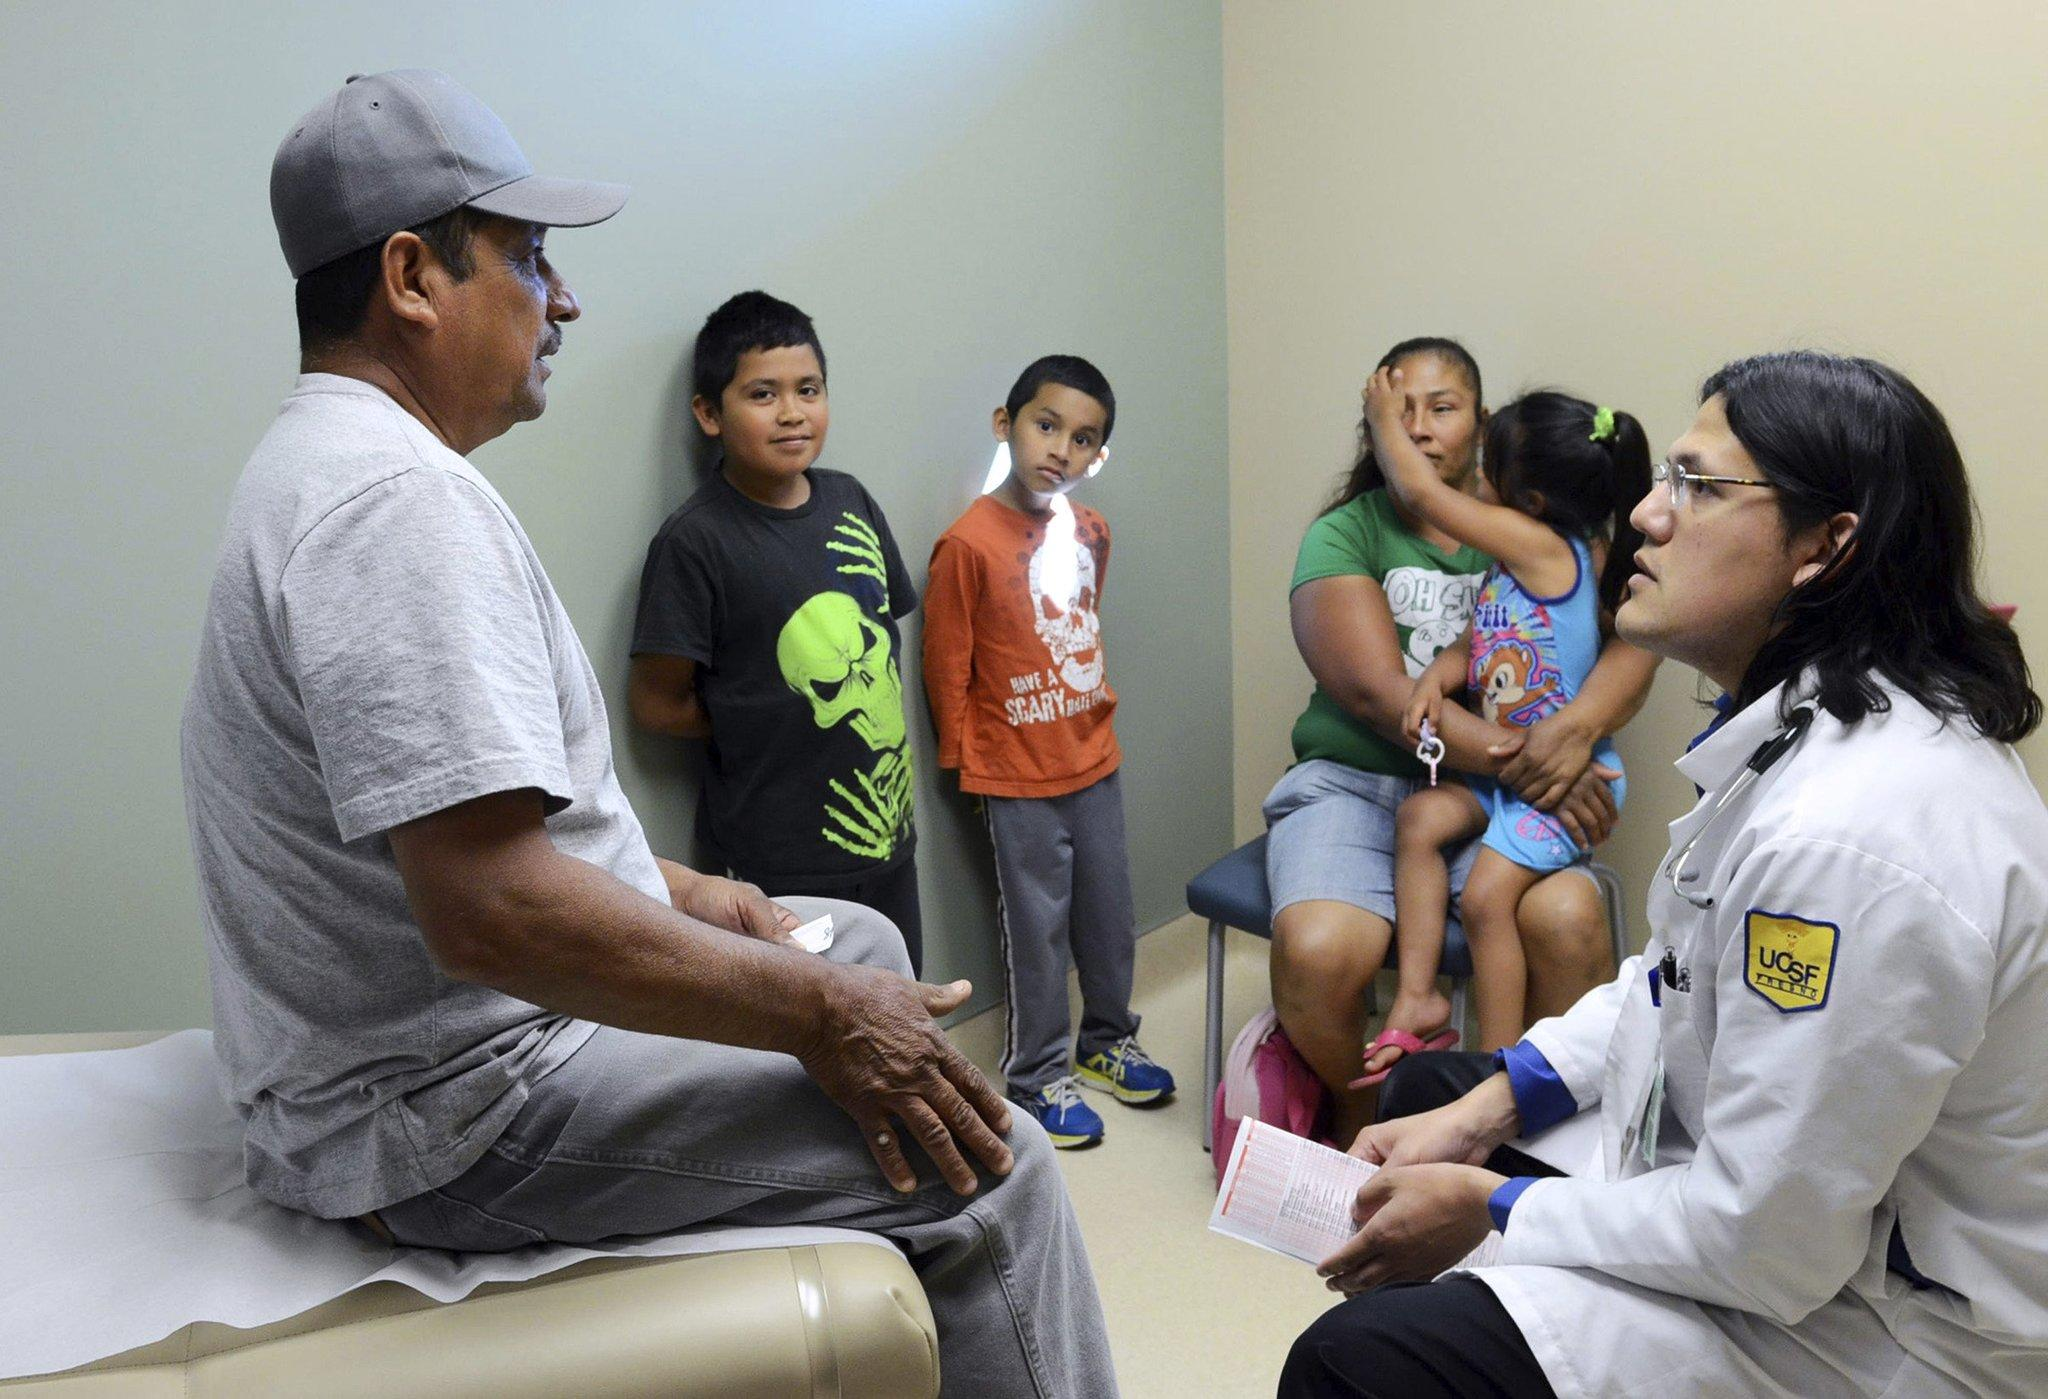 a study of immigration and health care in california Where can undocumented immigrants go for where can undocumented immigrants go for health need emergency care, regardless of their immigration.